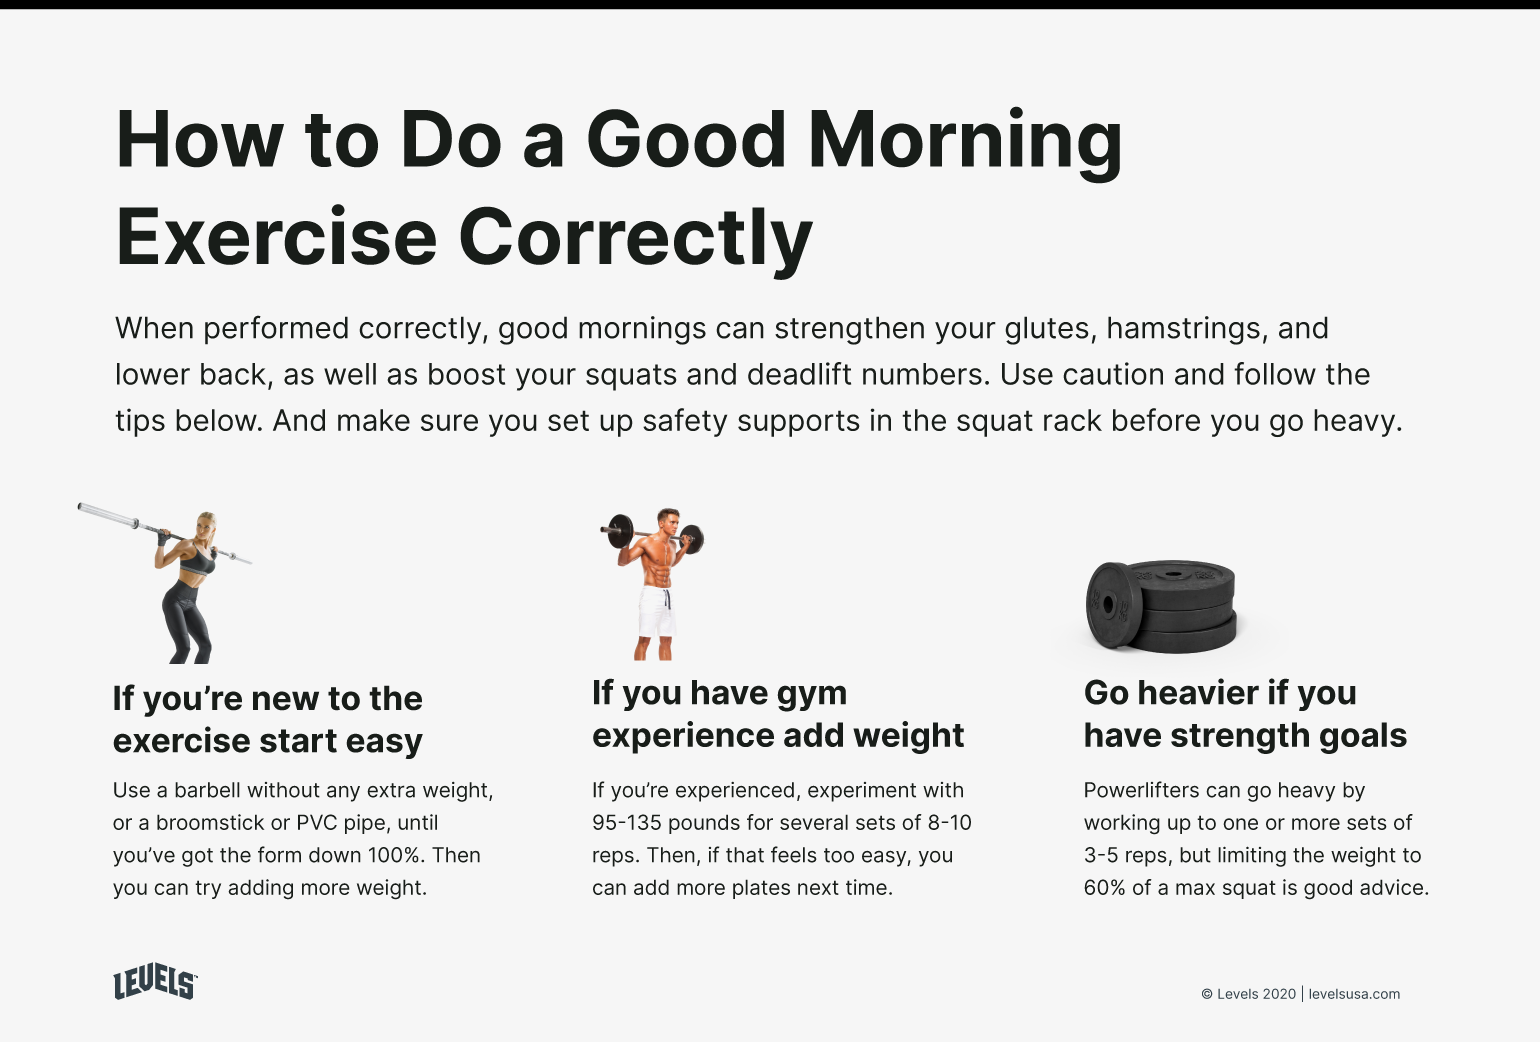 How to Do a Good Morning Exercise Correctly - Infographic